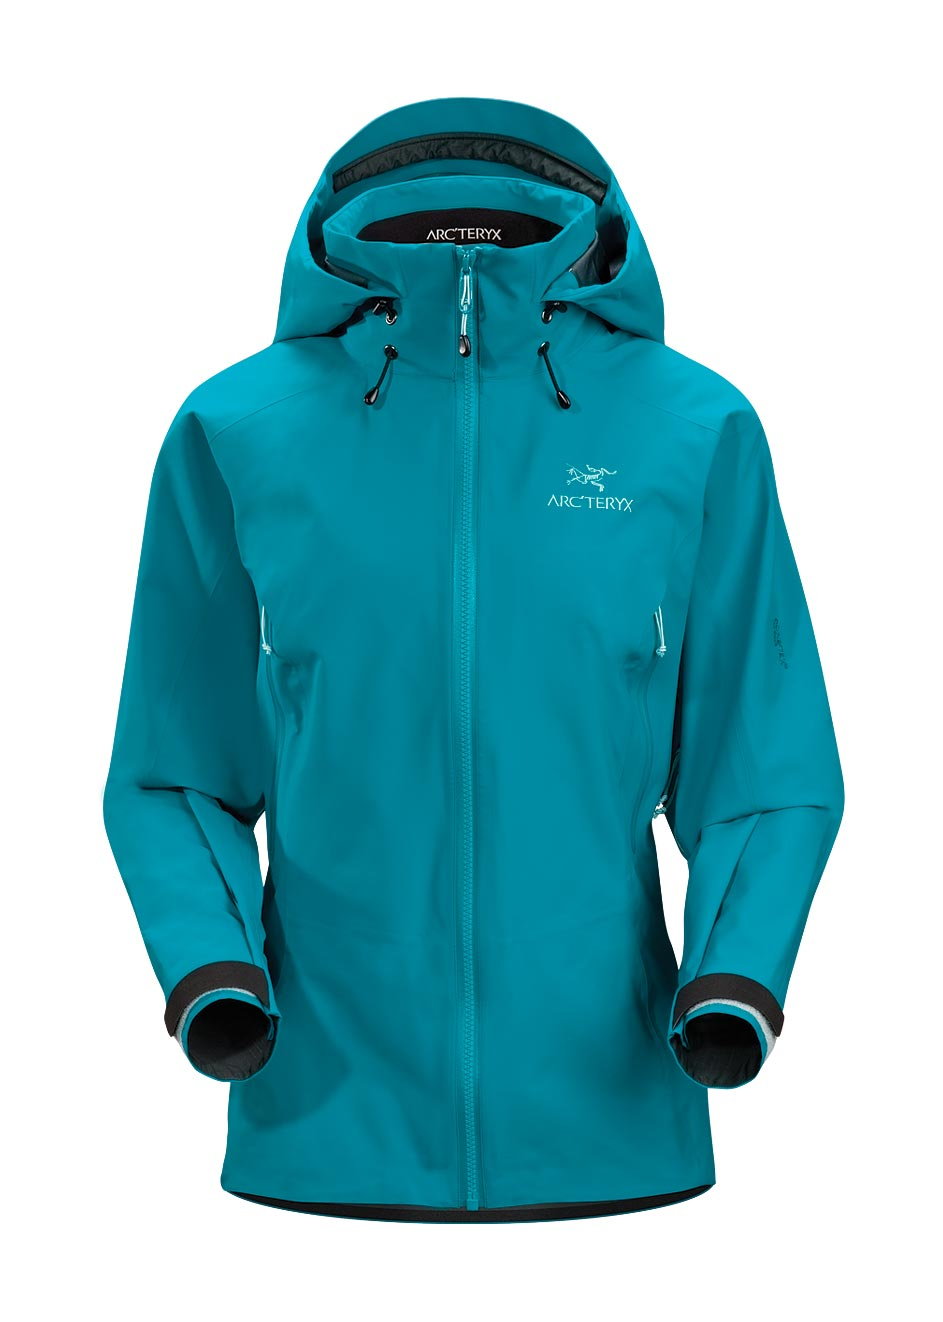 Arcteryx Bondi Blue Beta AR Jacket